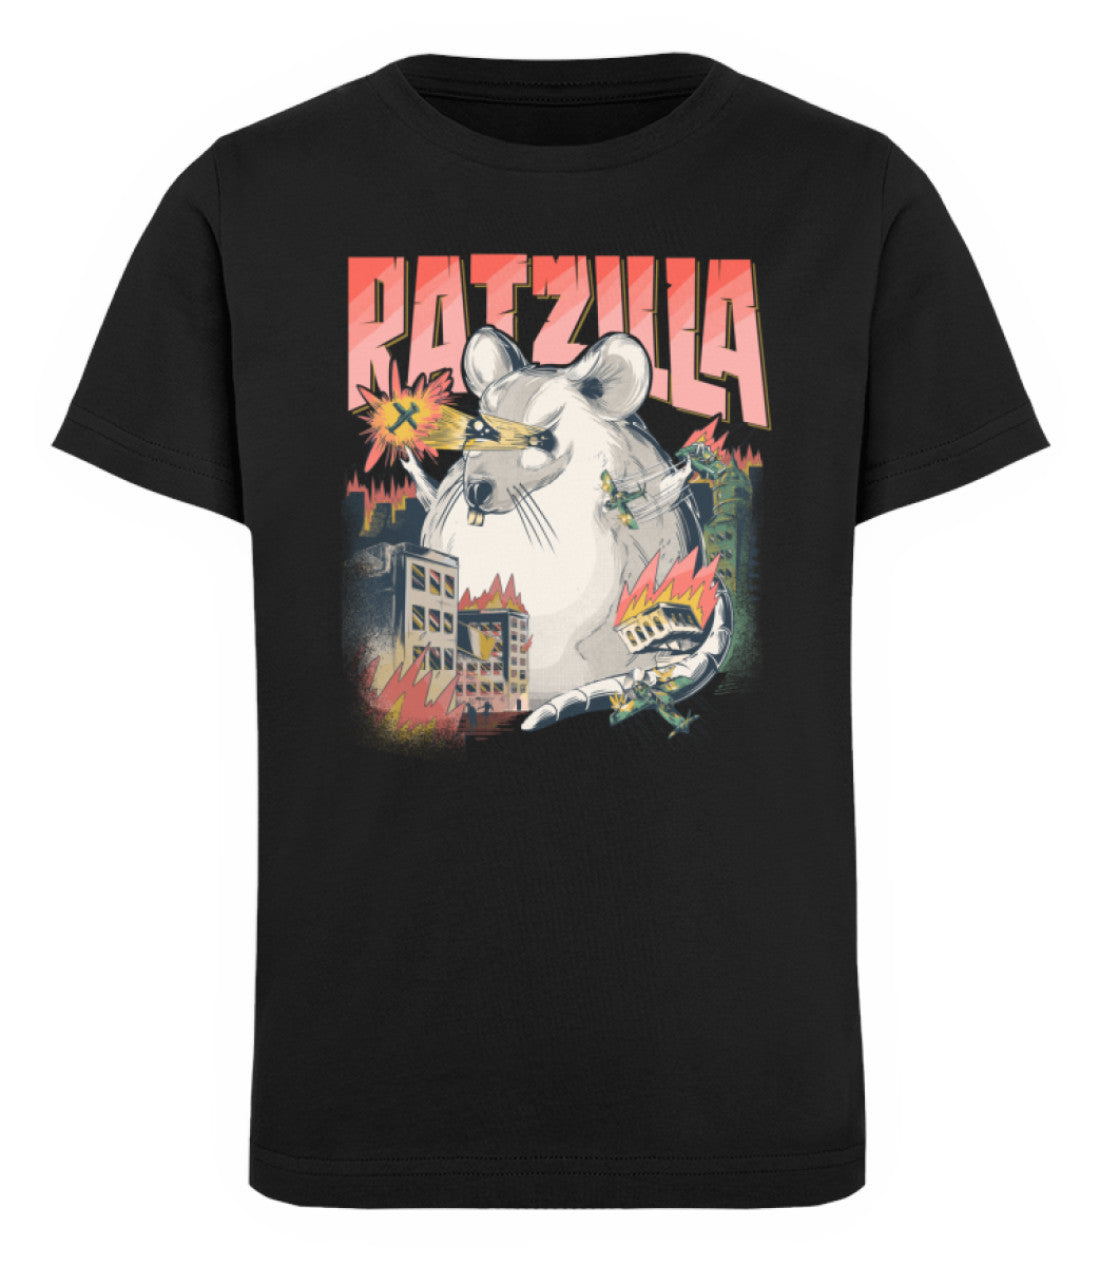 RATZILLA | Freches Ratten Monster | Kinder Bio T-Shirt in Black in Größe 12/14 (152/164)